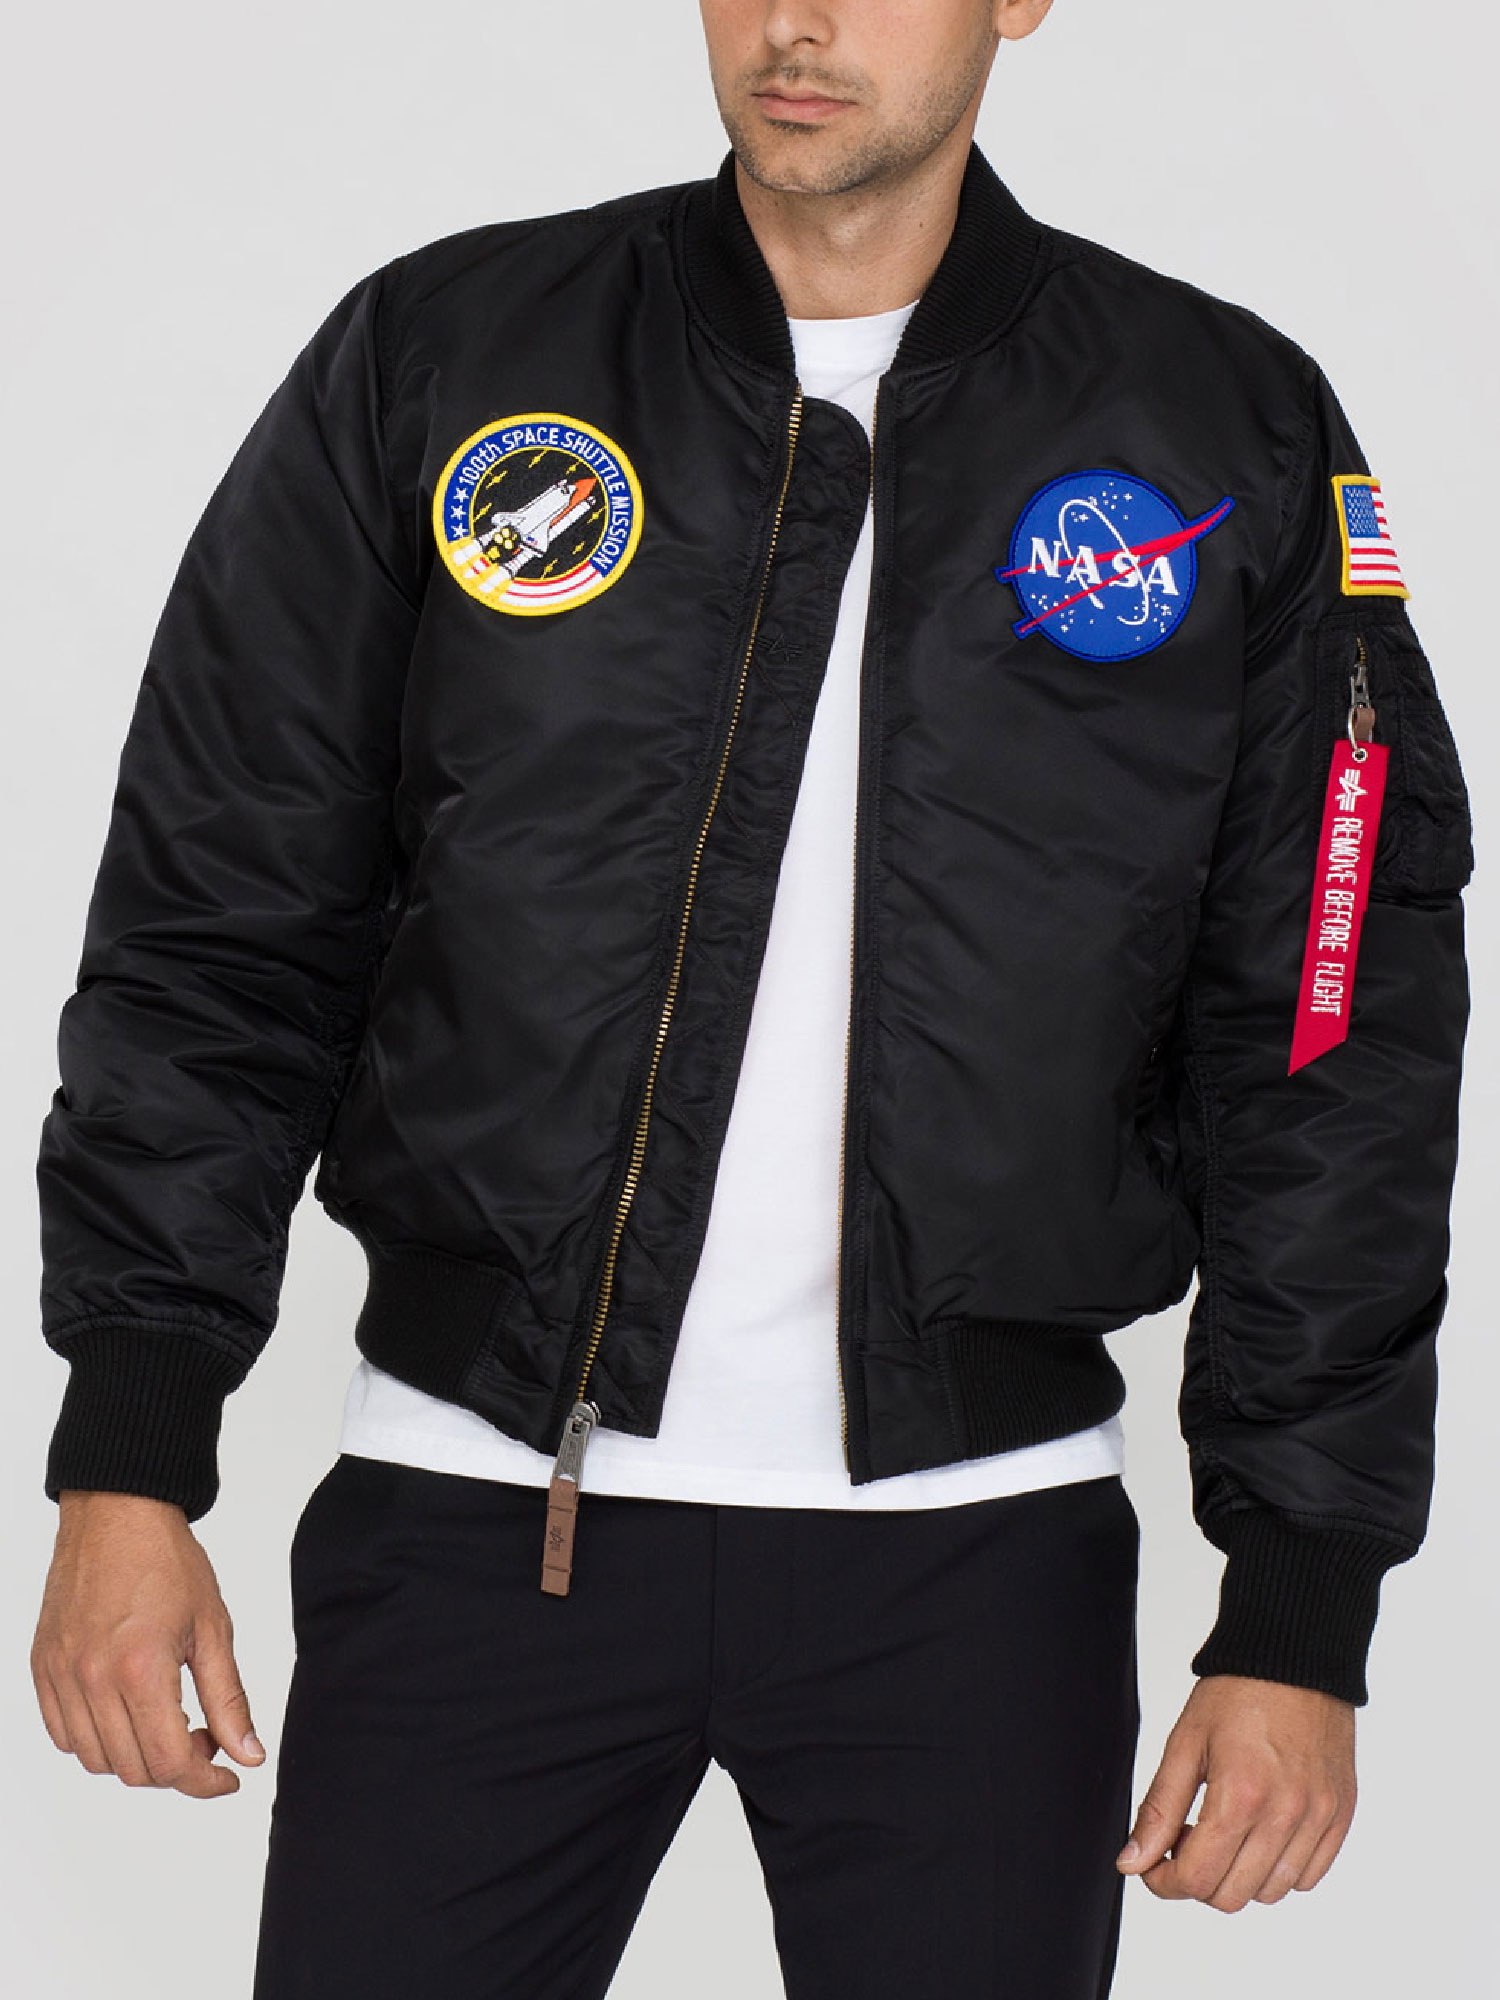 nasa 100th space shuttle mission jacket - photo #13